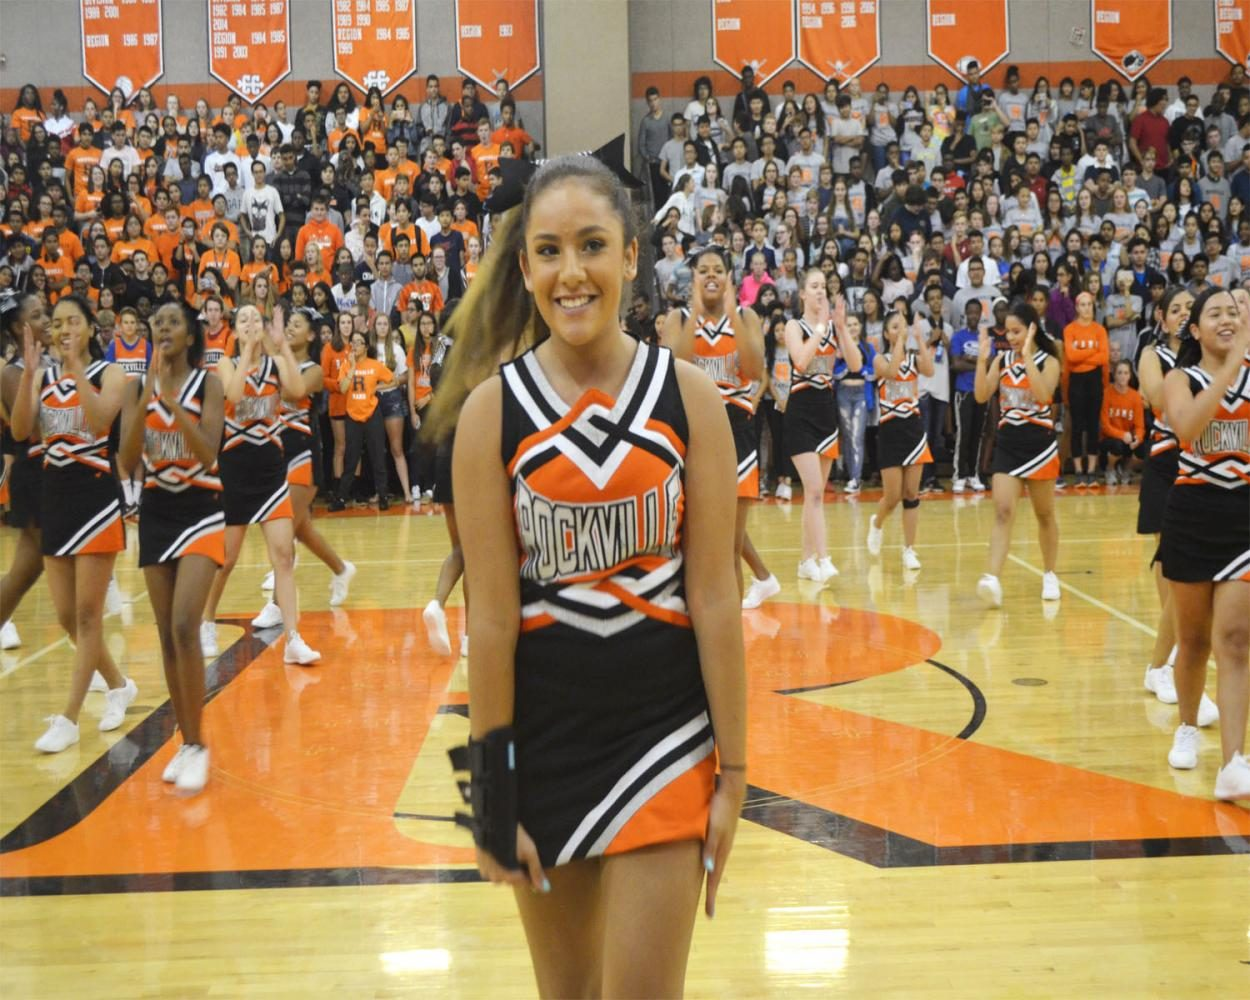 Cheerleaders perform at the pep rally.